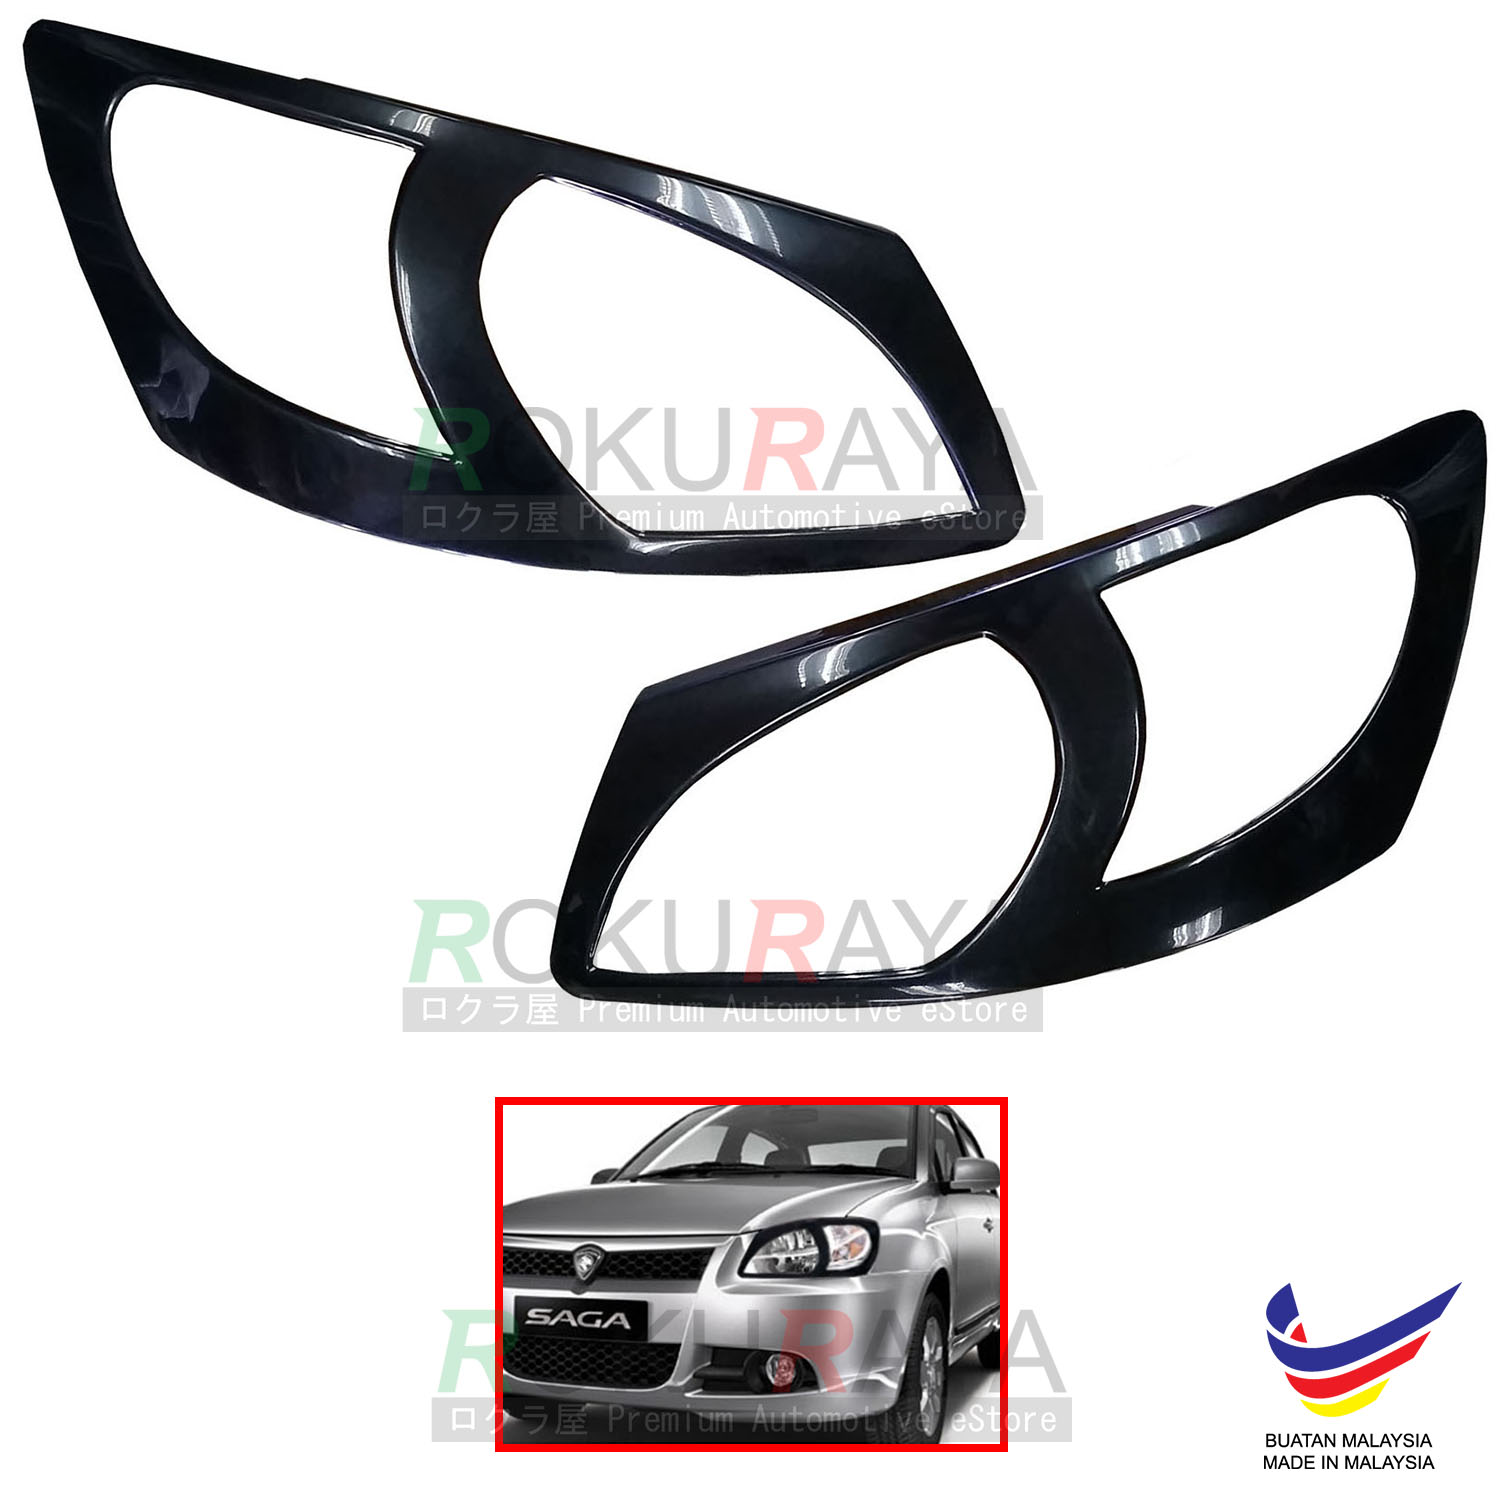 Proton Saga BLM (2008-2010) Car Head Lamp Eye Lid Brow Cover